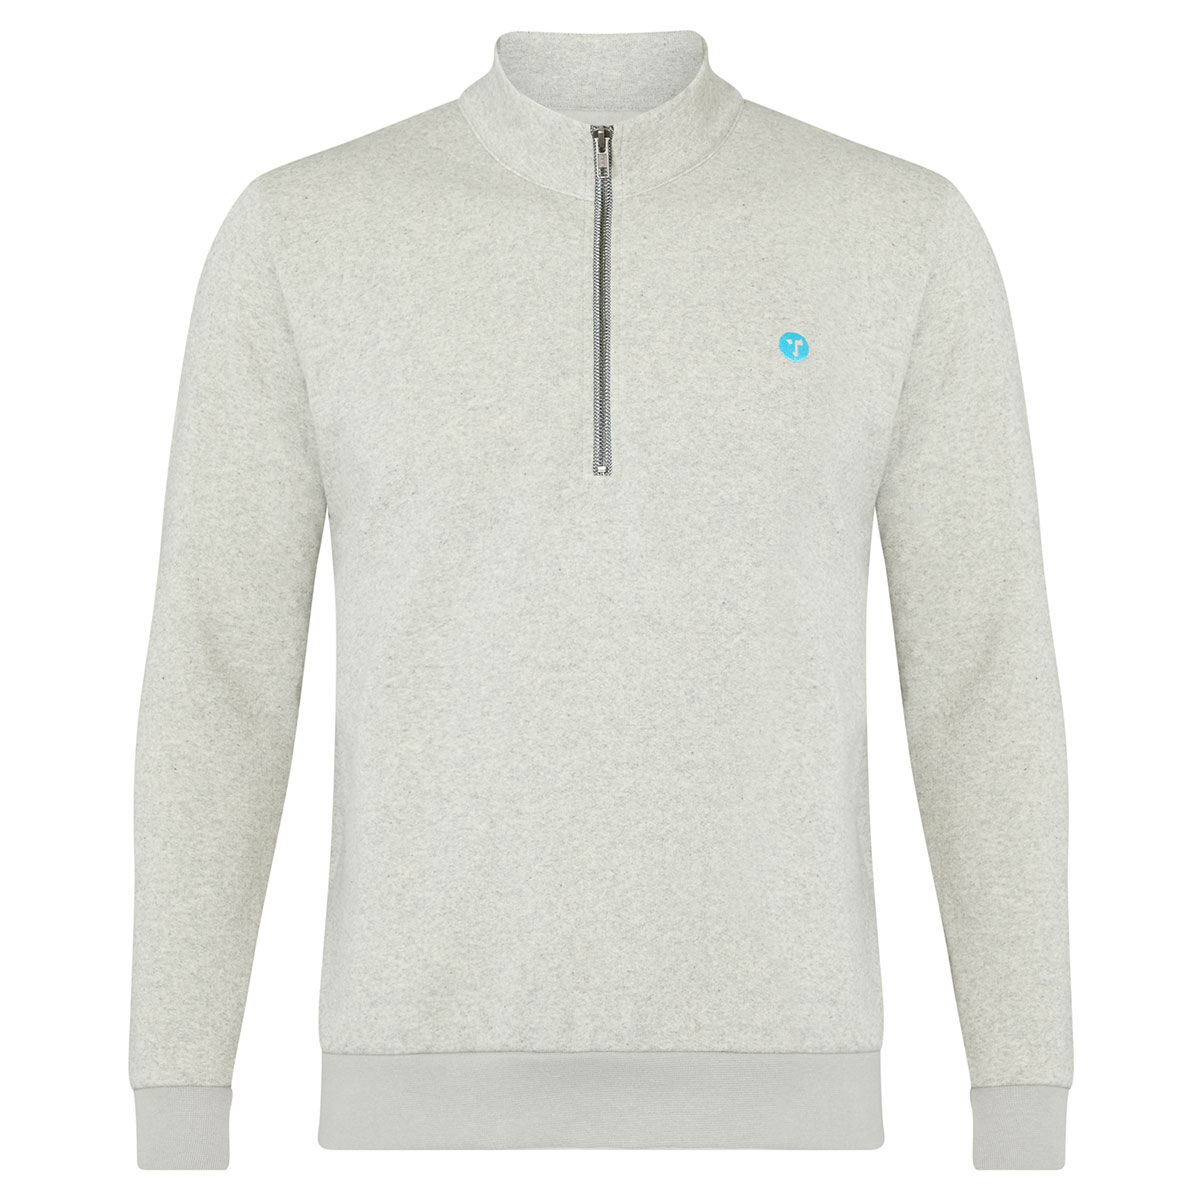 OCEANTEE Wobbegong Zip Golf Sweater, Male, Grey Speckle, Small